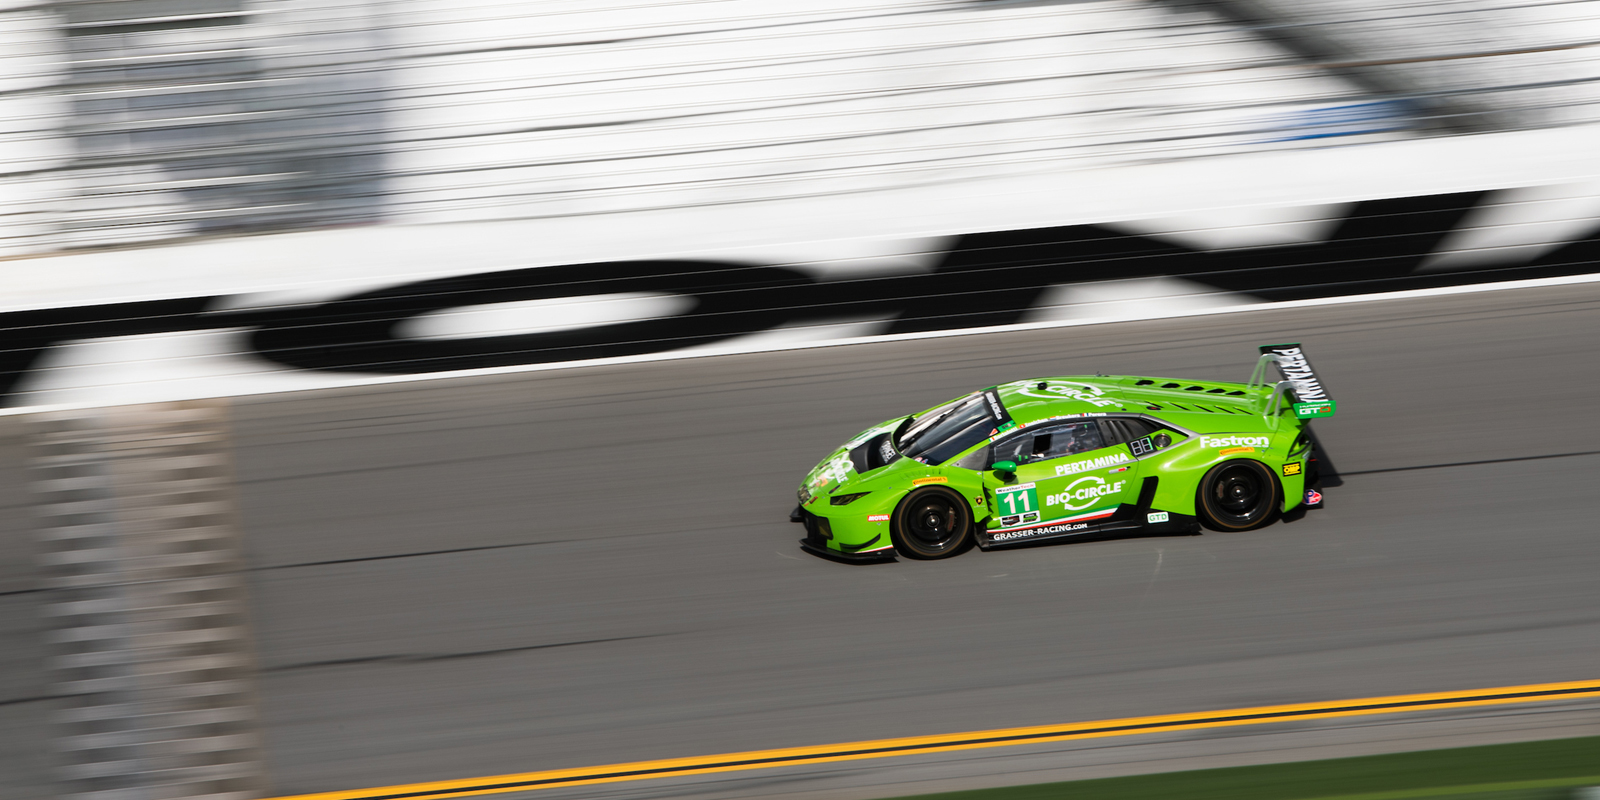 Lamborghini Earns First Ever 24 Hour Win At Daytona